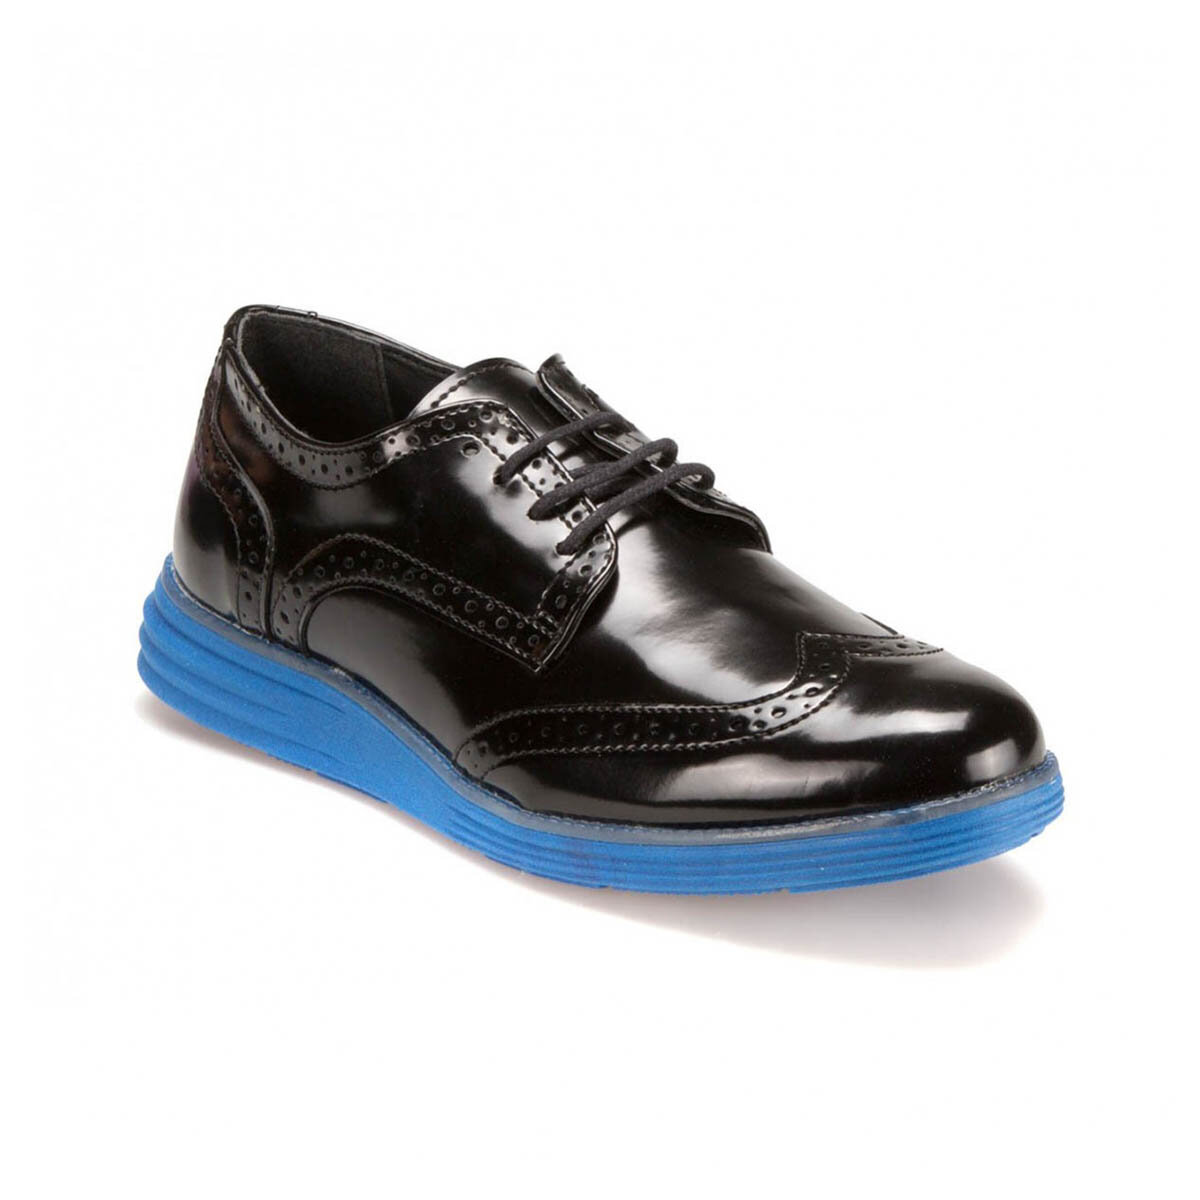 FLO 61123-1 M 6693 Black Men 'S Classic Shoes-Styles